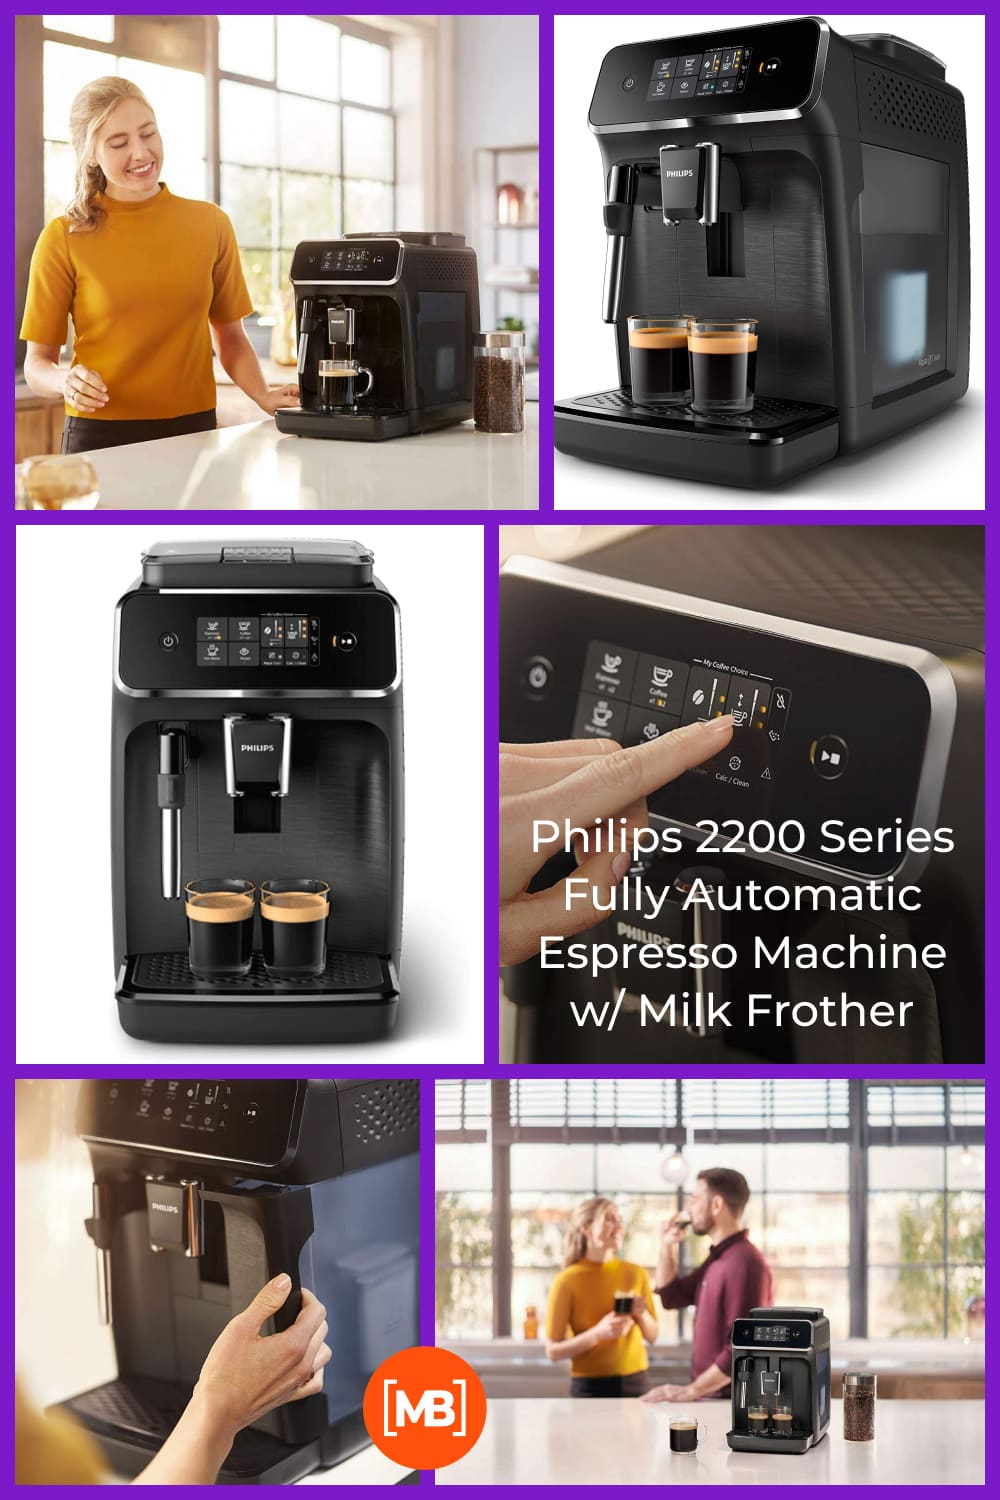 Easy selection of your coffee with intuitive touch display, makes espresso, hot water and coffee.